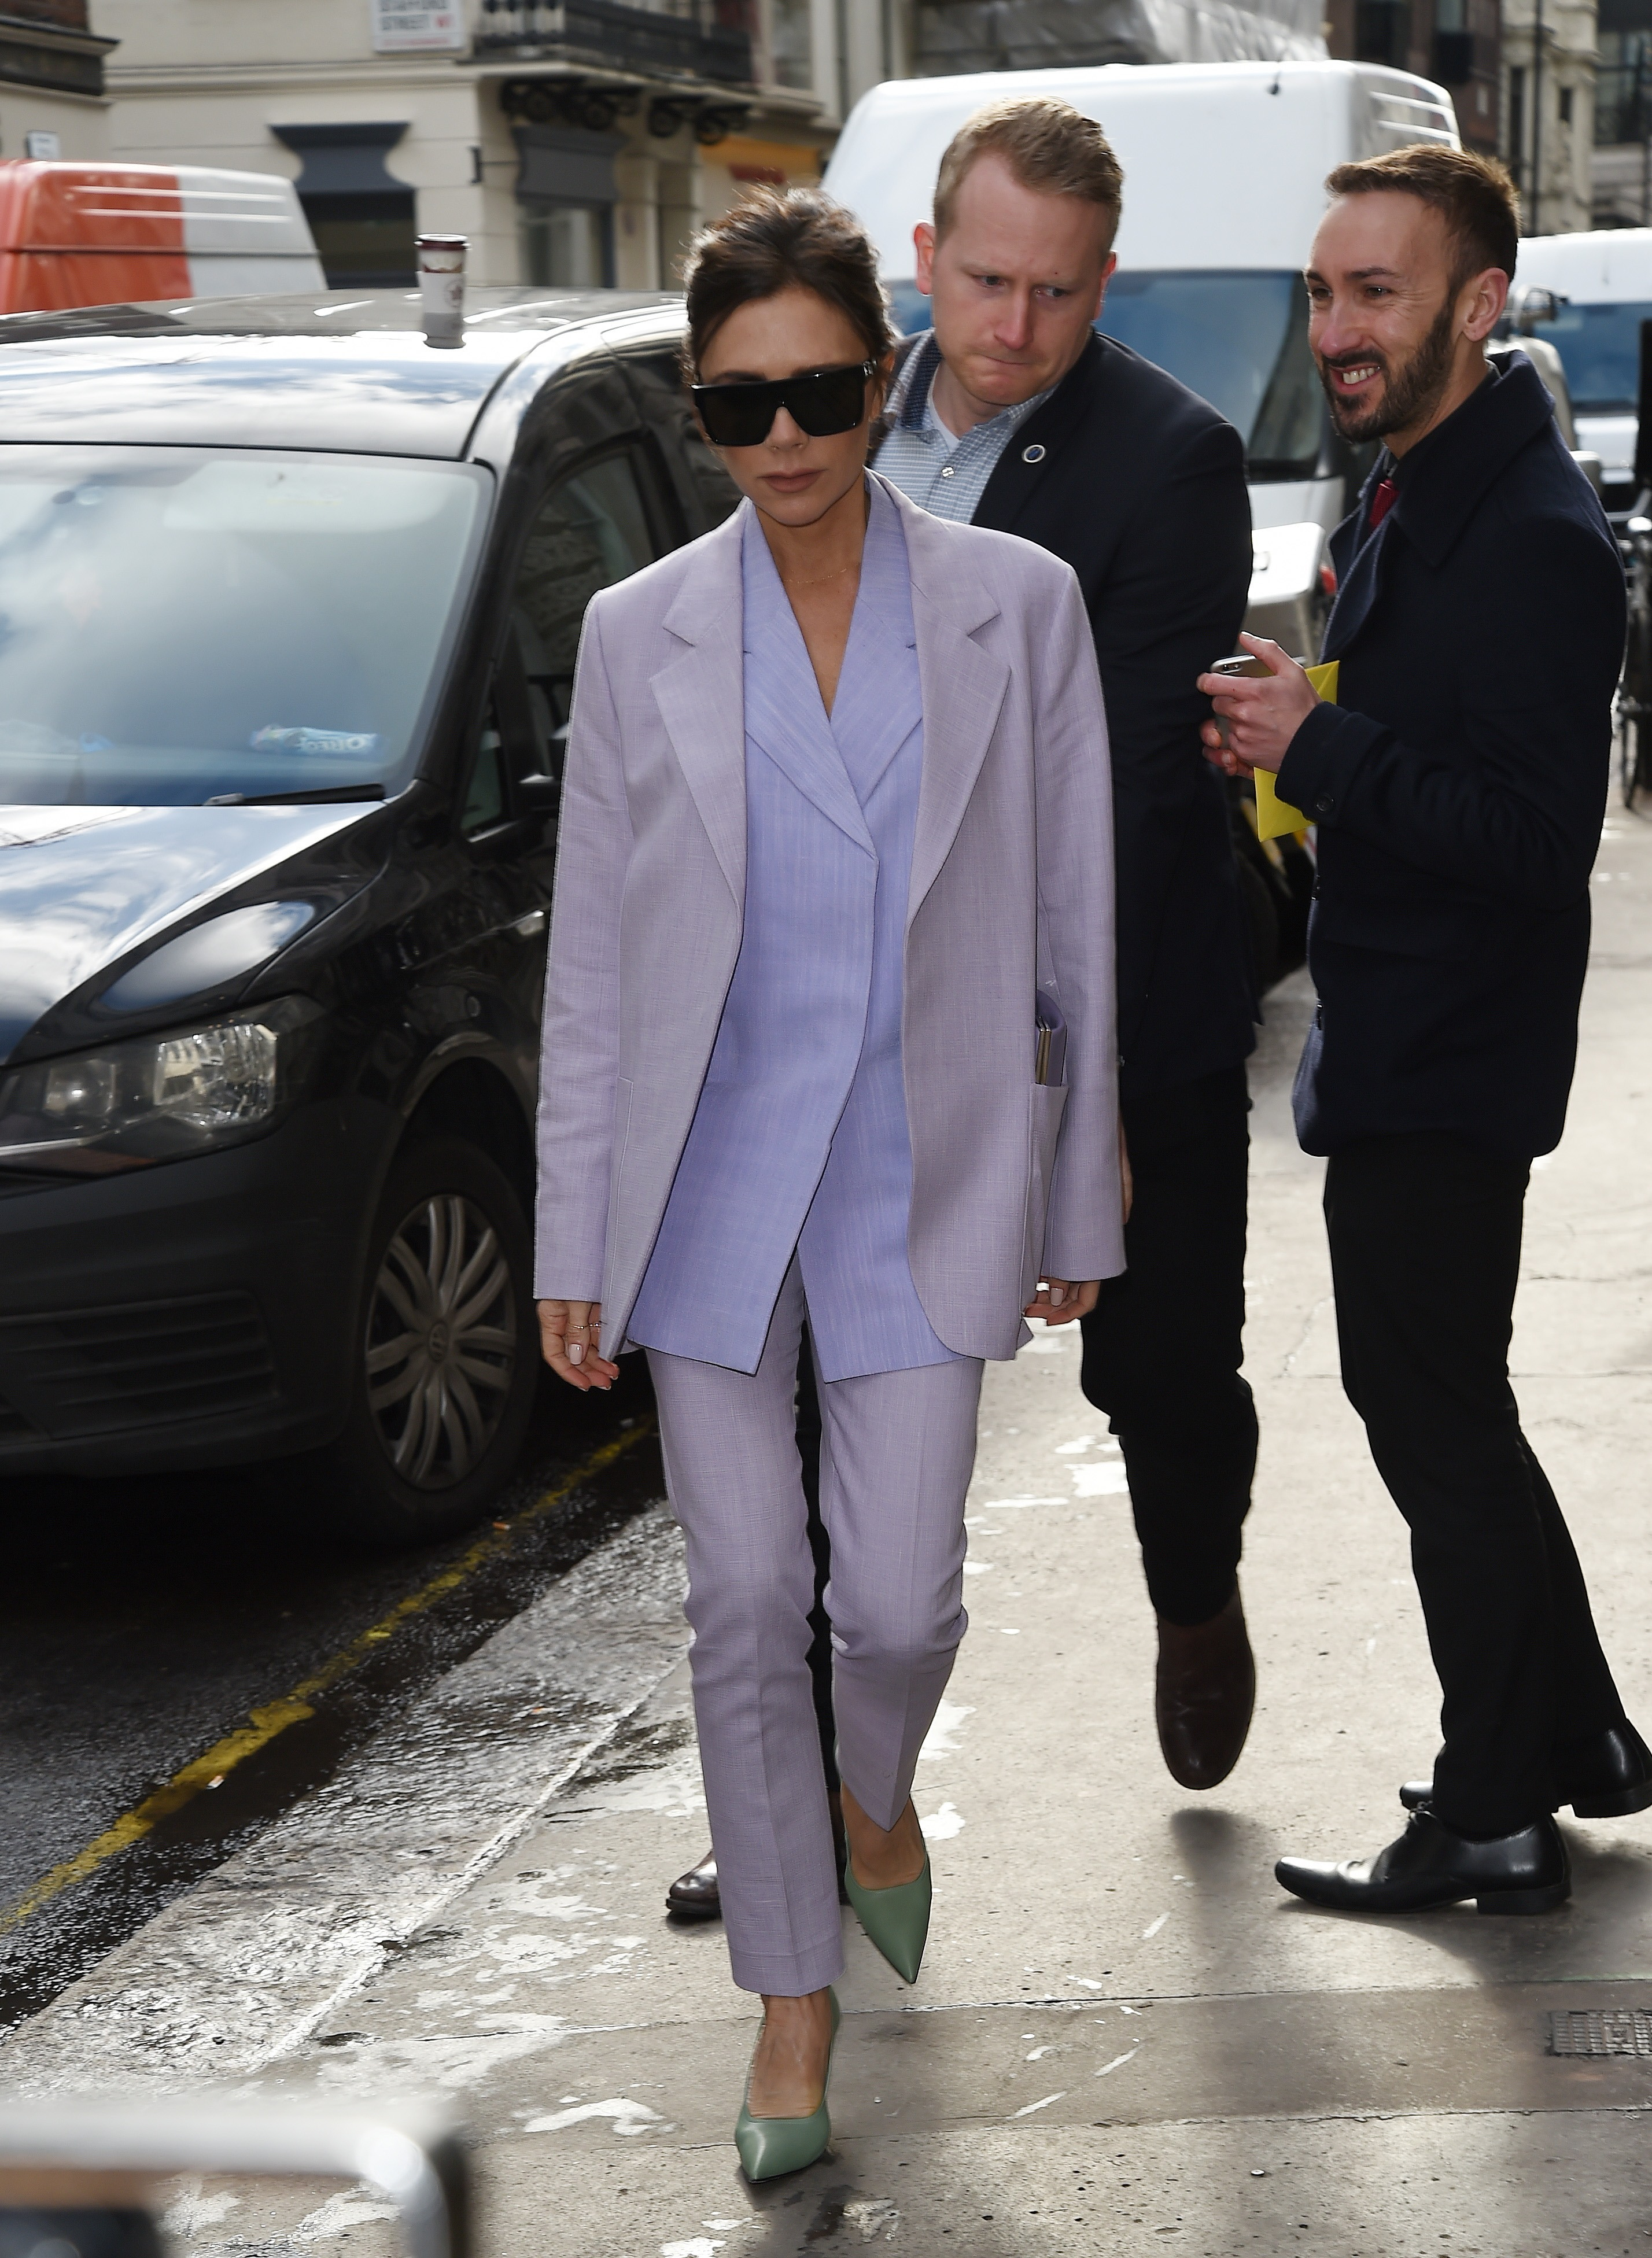 Victoria Beckham is seen in the streets of London, UK. Posh Spice is known to be incredibly stylish, but she misses the mark in this purple number, which looks a bit like a nurse's uniform, pairing it with off-green high heels.  <P> Pictured: Victoria Beckham <B>Ref: SPL1669120  080318  </B><BR/> Picture by: Flynet - Splash News<BR/> </P><P> <B>Splash News and Pictures</B><BR/> Los Angeles:310-821-2666<BR/> New York:212-619-2666<BR/> London:870-934-2666<BR/> <span id=